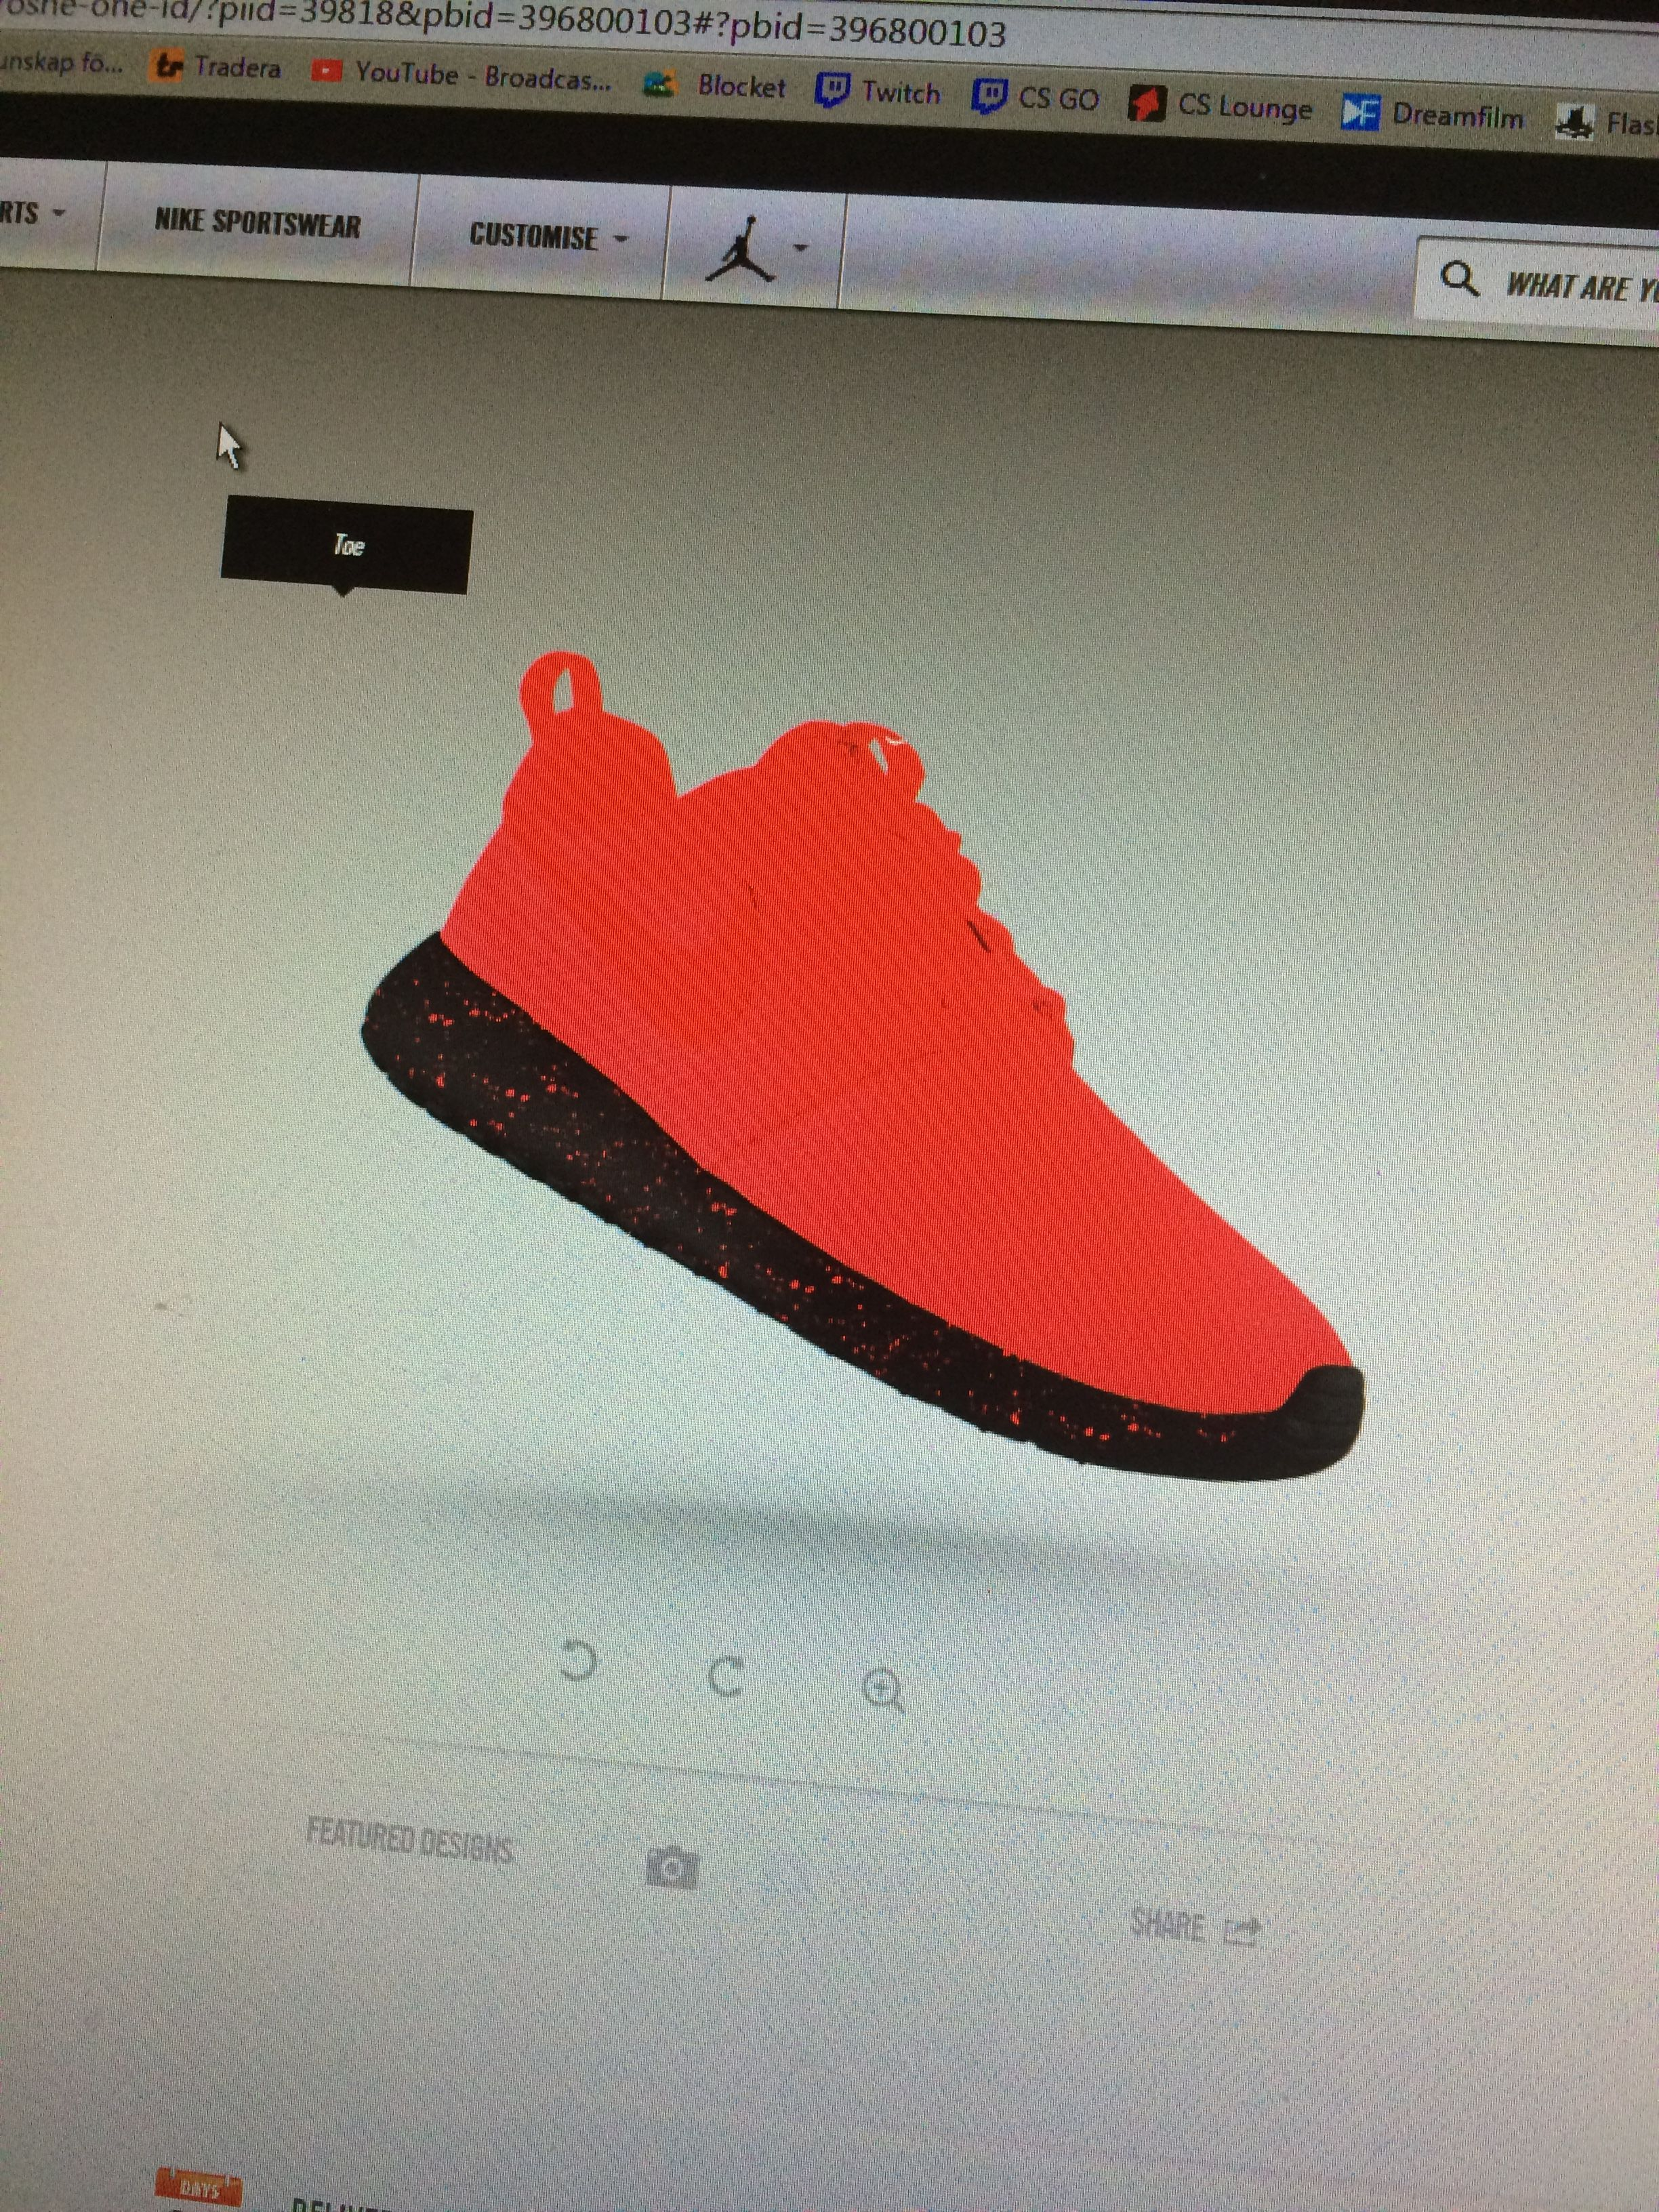 1c54a49afbd056 Nike allows you to customize your own shoes. You can customize the shoe to  whatever